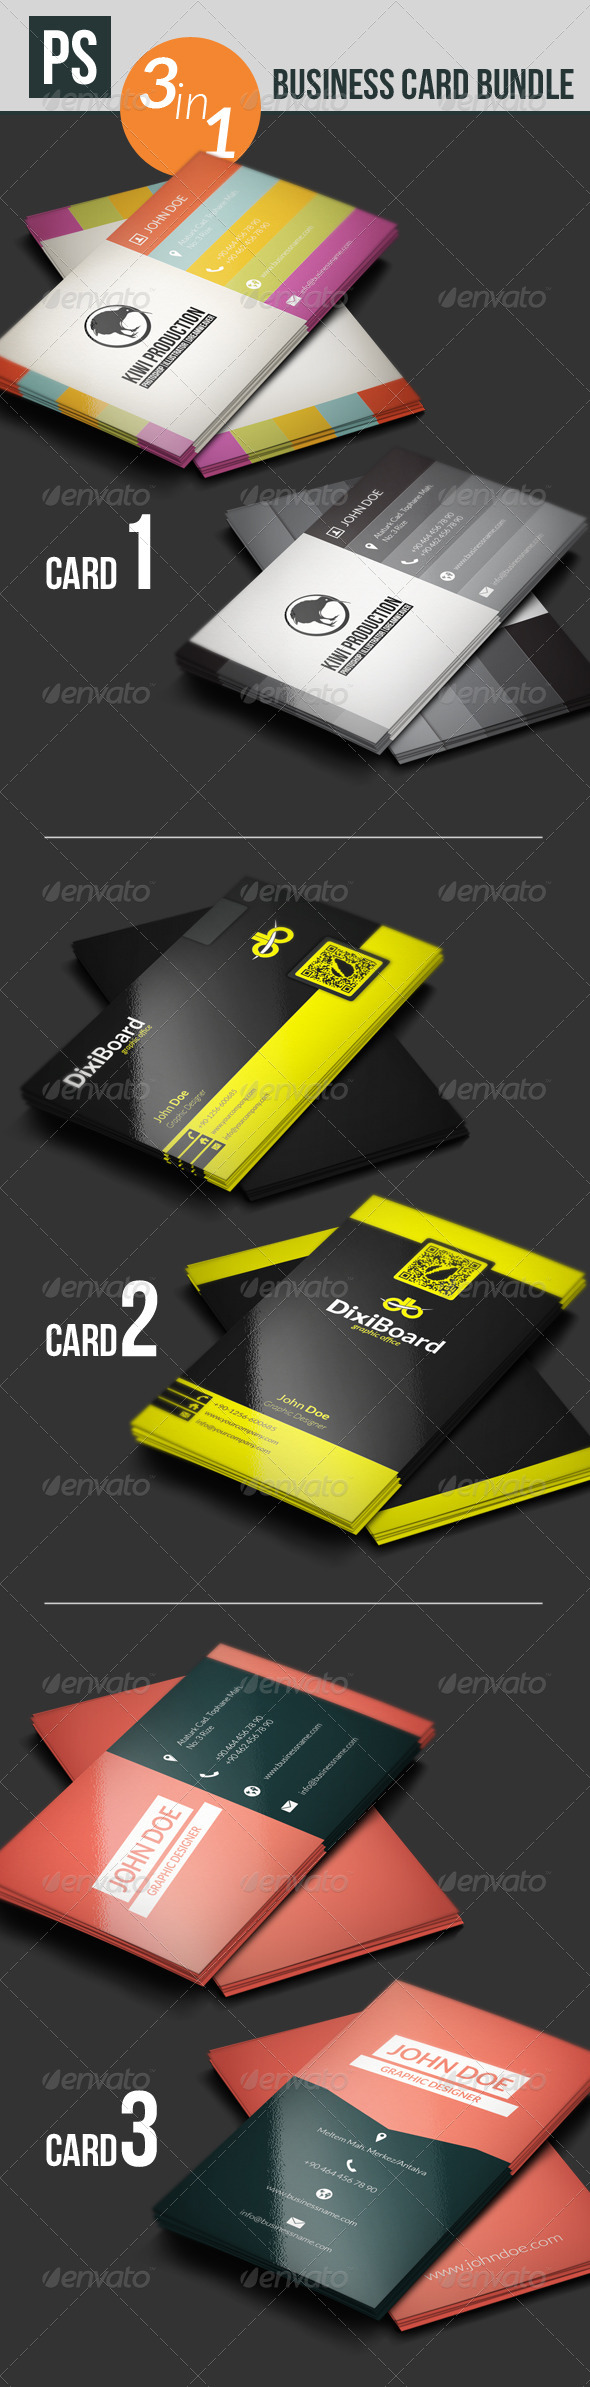 GraphicRiver Business Card Bundle 5555966